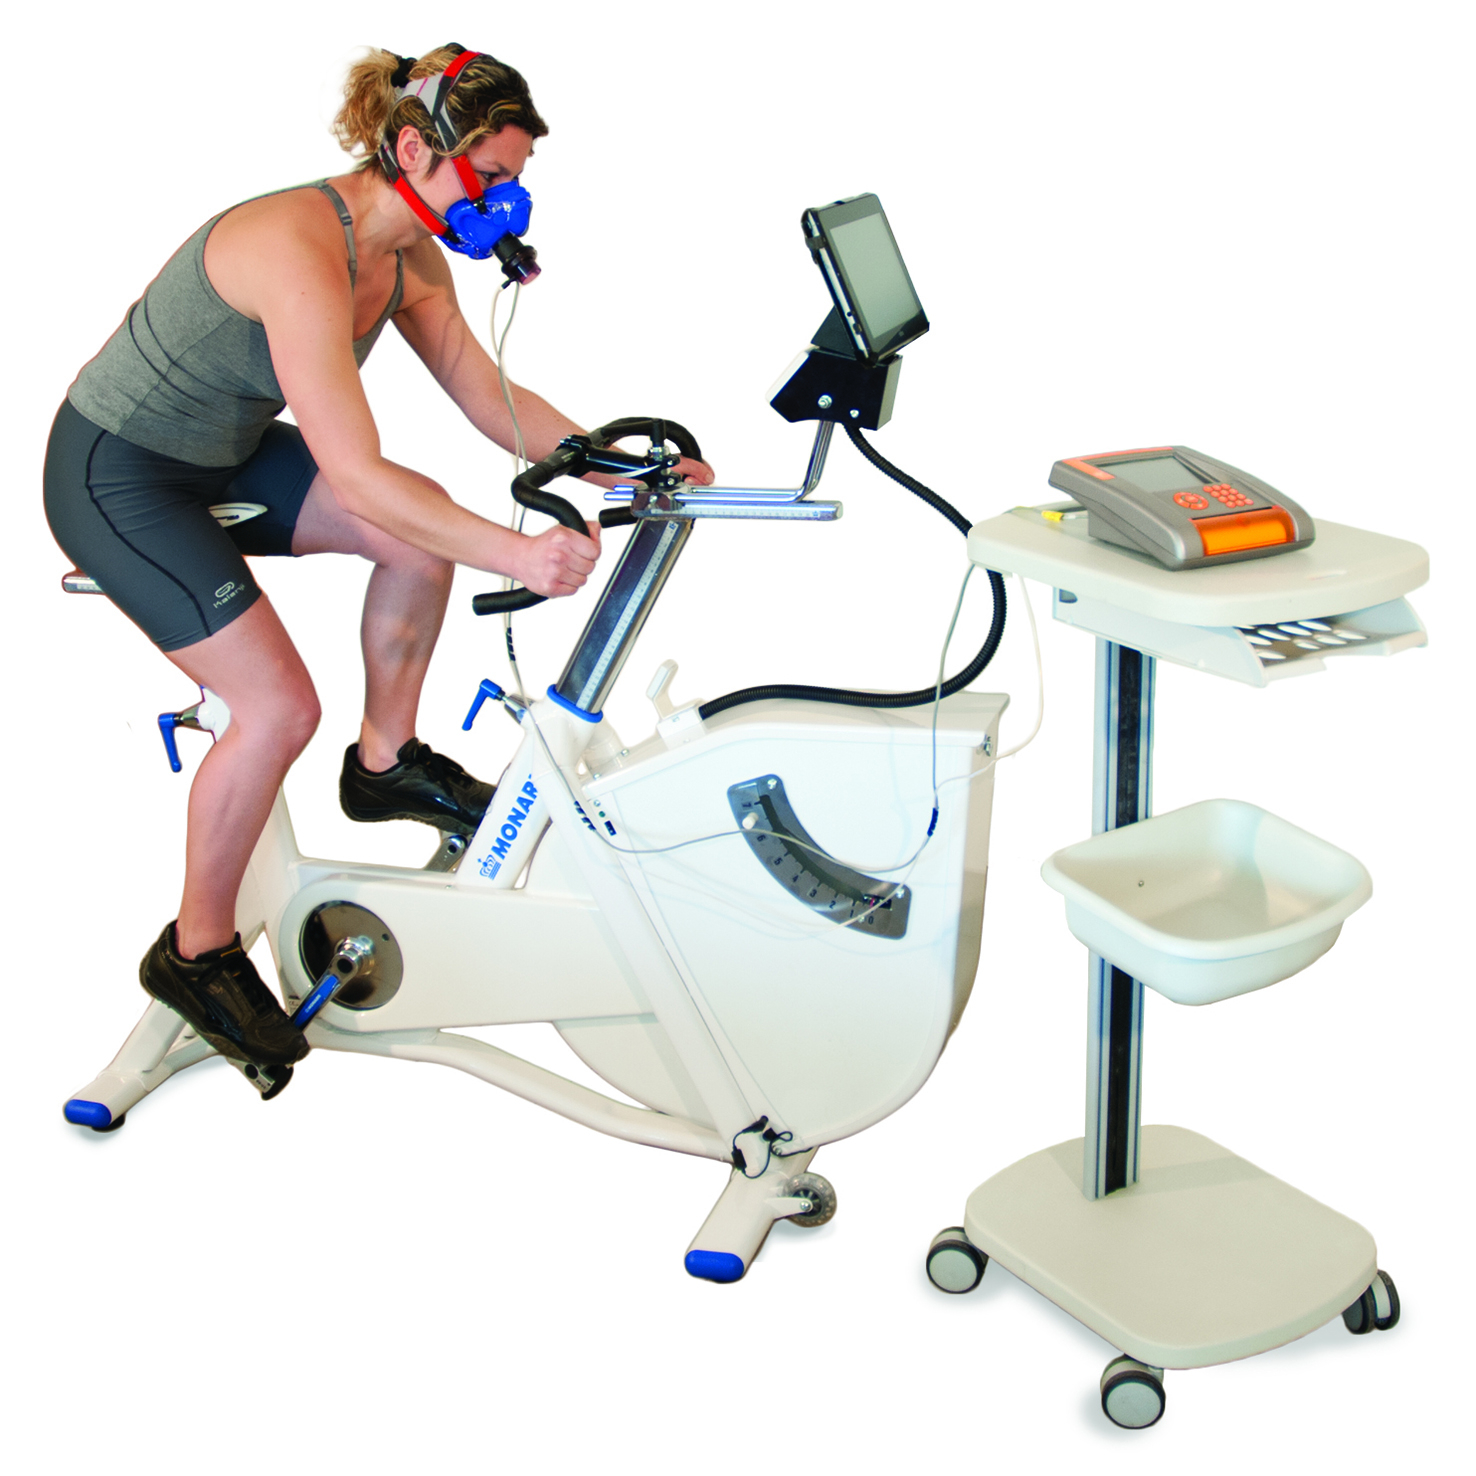 fitmatepro_application_vo2maxtestwomanmaskbikekart_cmyk300dpi125x125mm.jpg